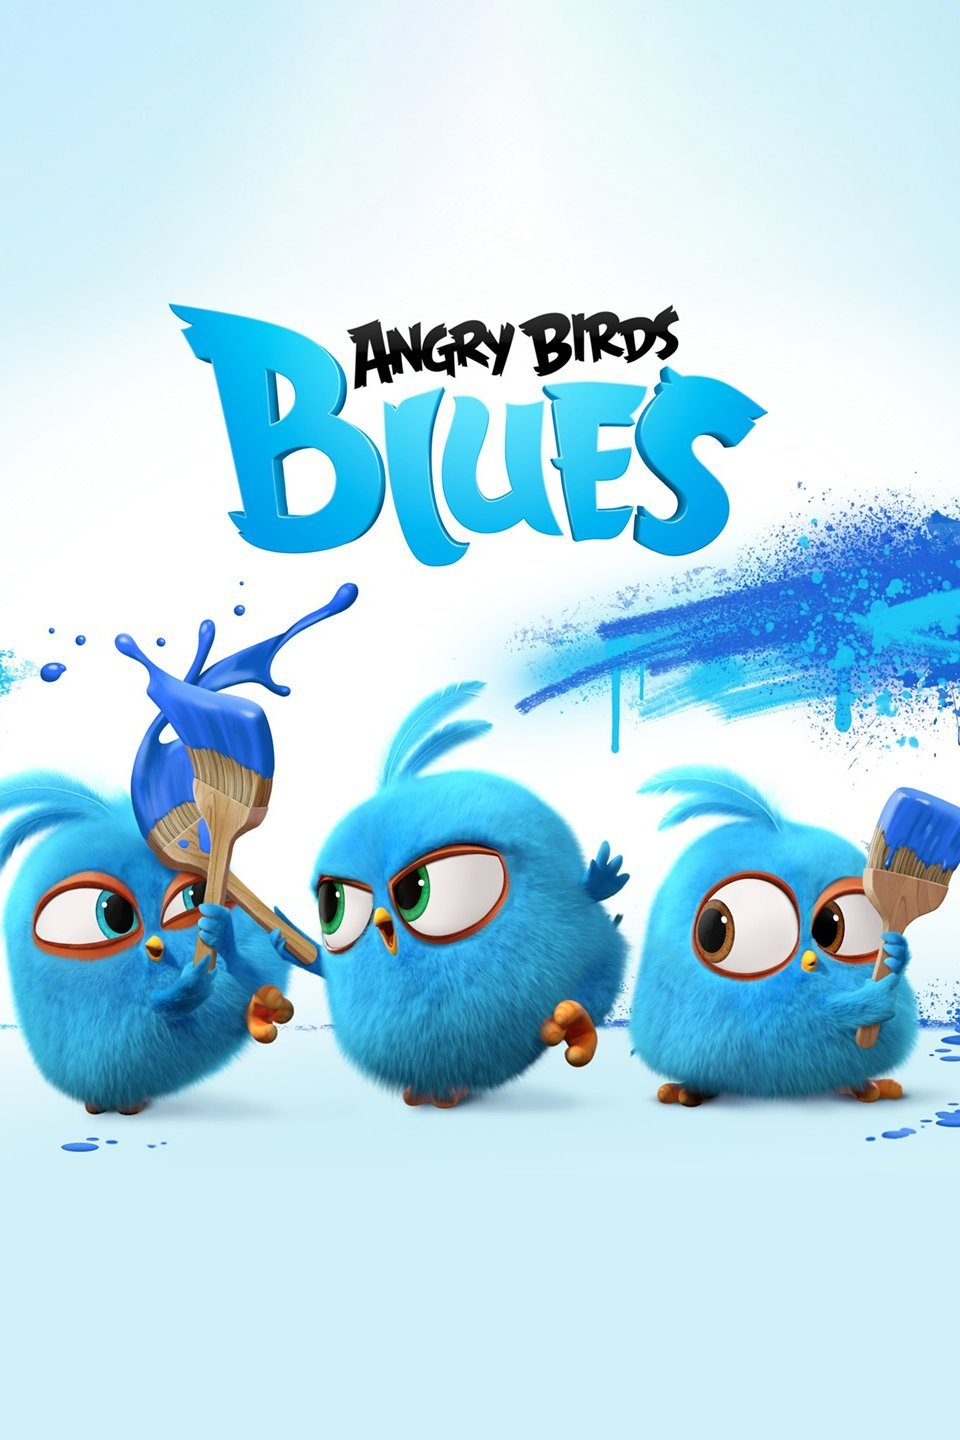 Angry Birds Blues, 2017 - Created by RovioModeled 3D props in Maya